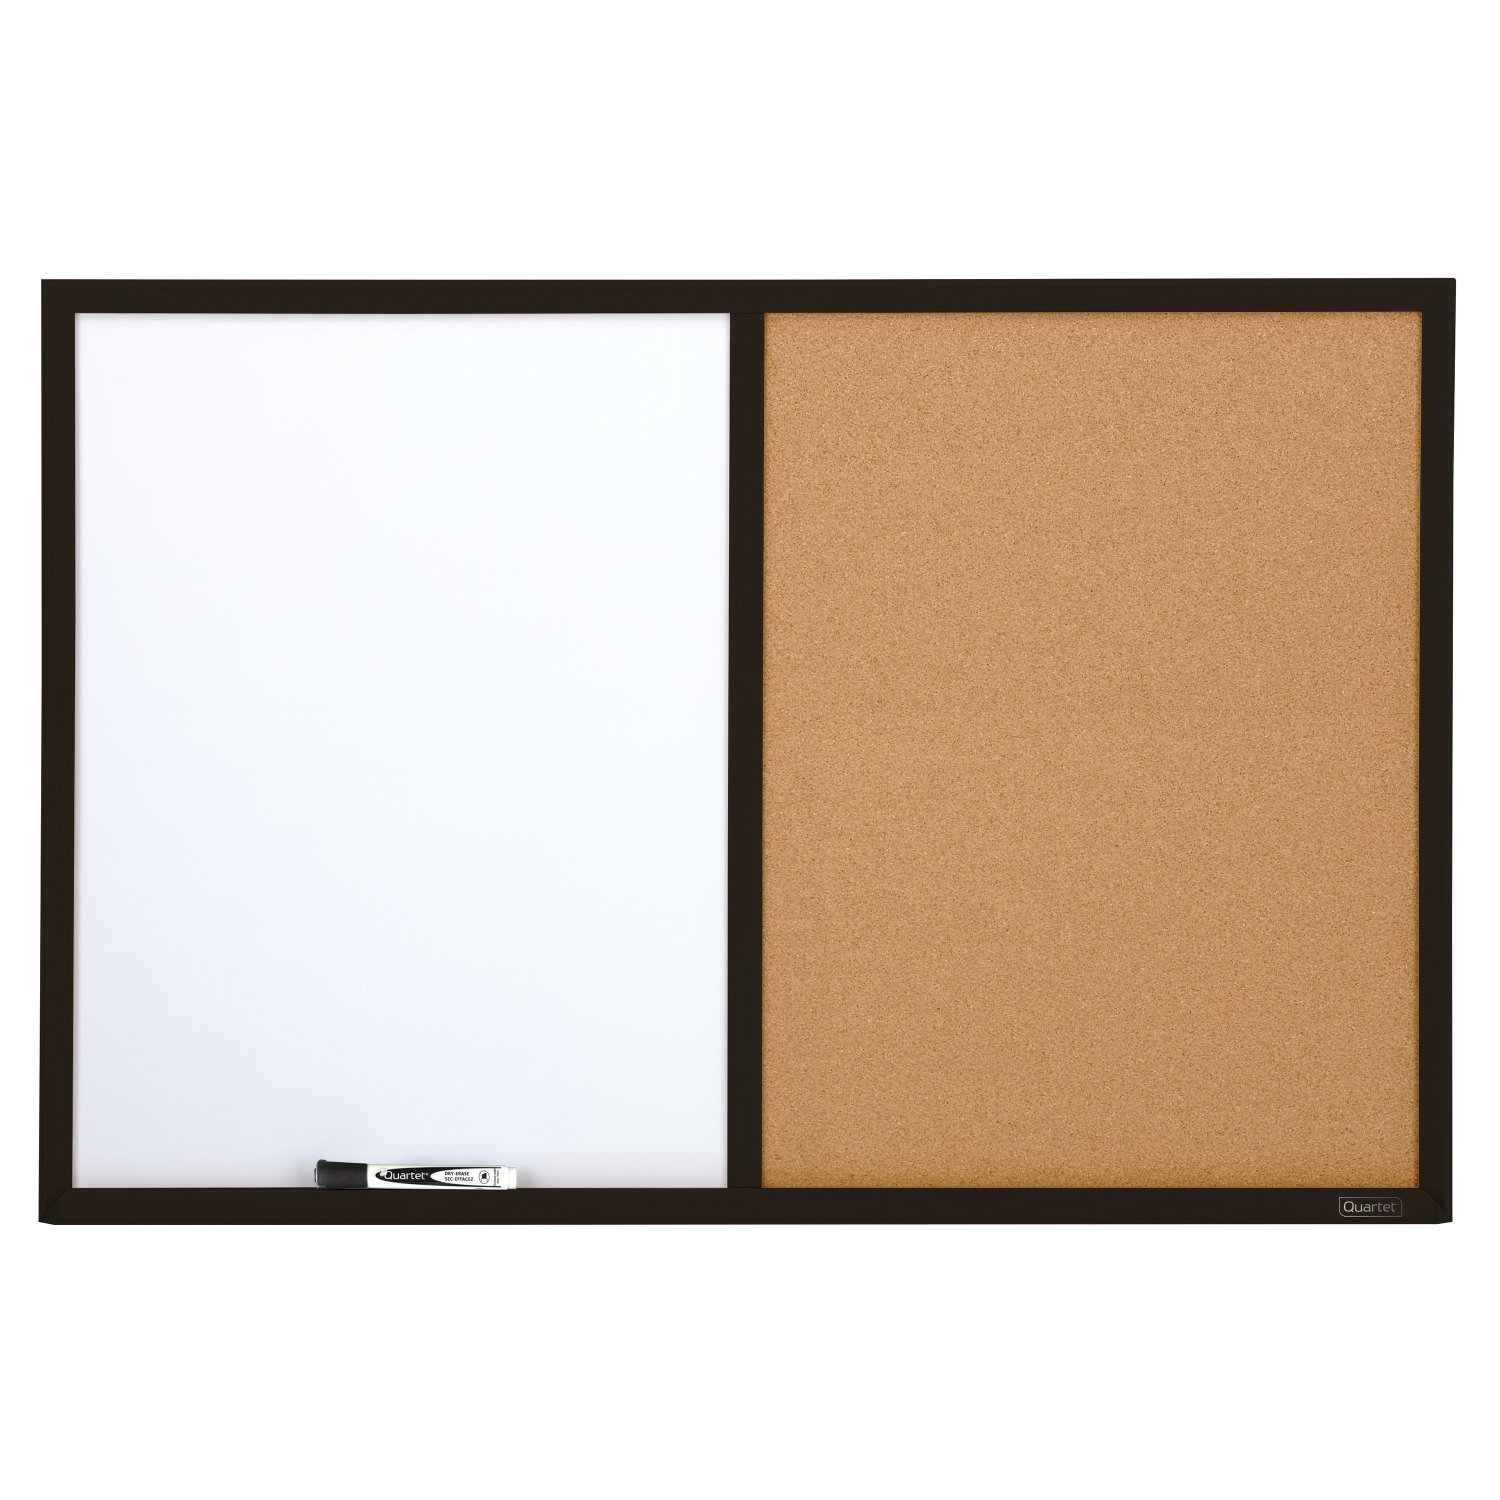 Amazon.com : Quartet Dry Erase Board & Cork Board Combination, 2 x 3 ...